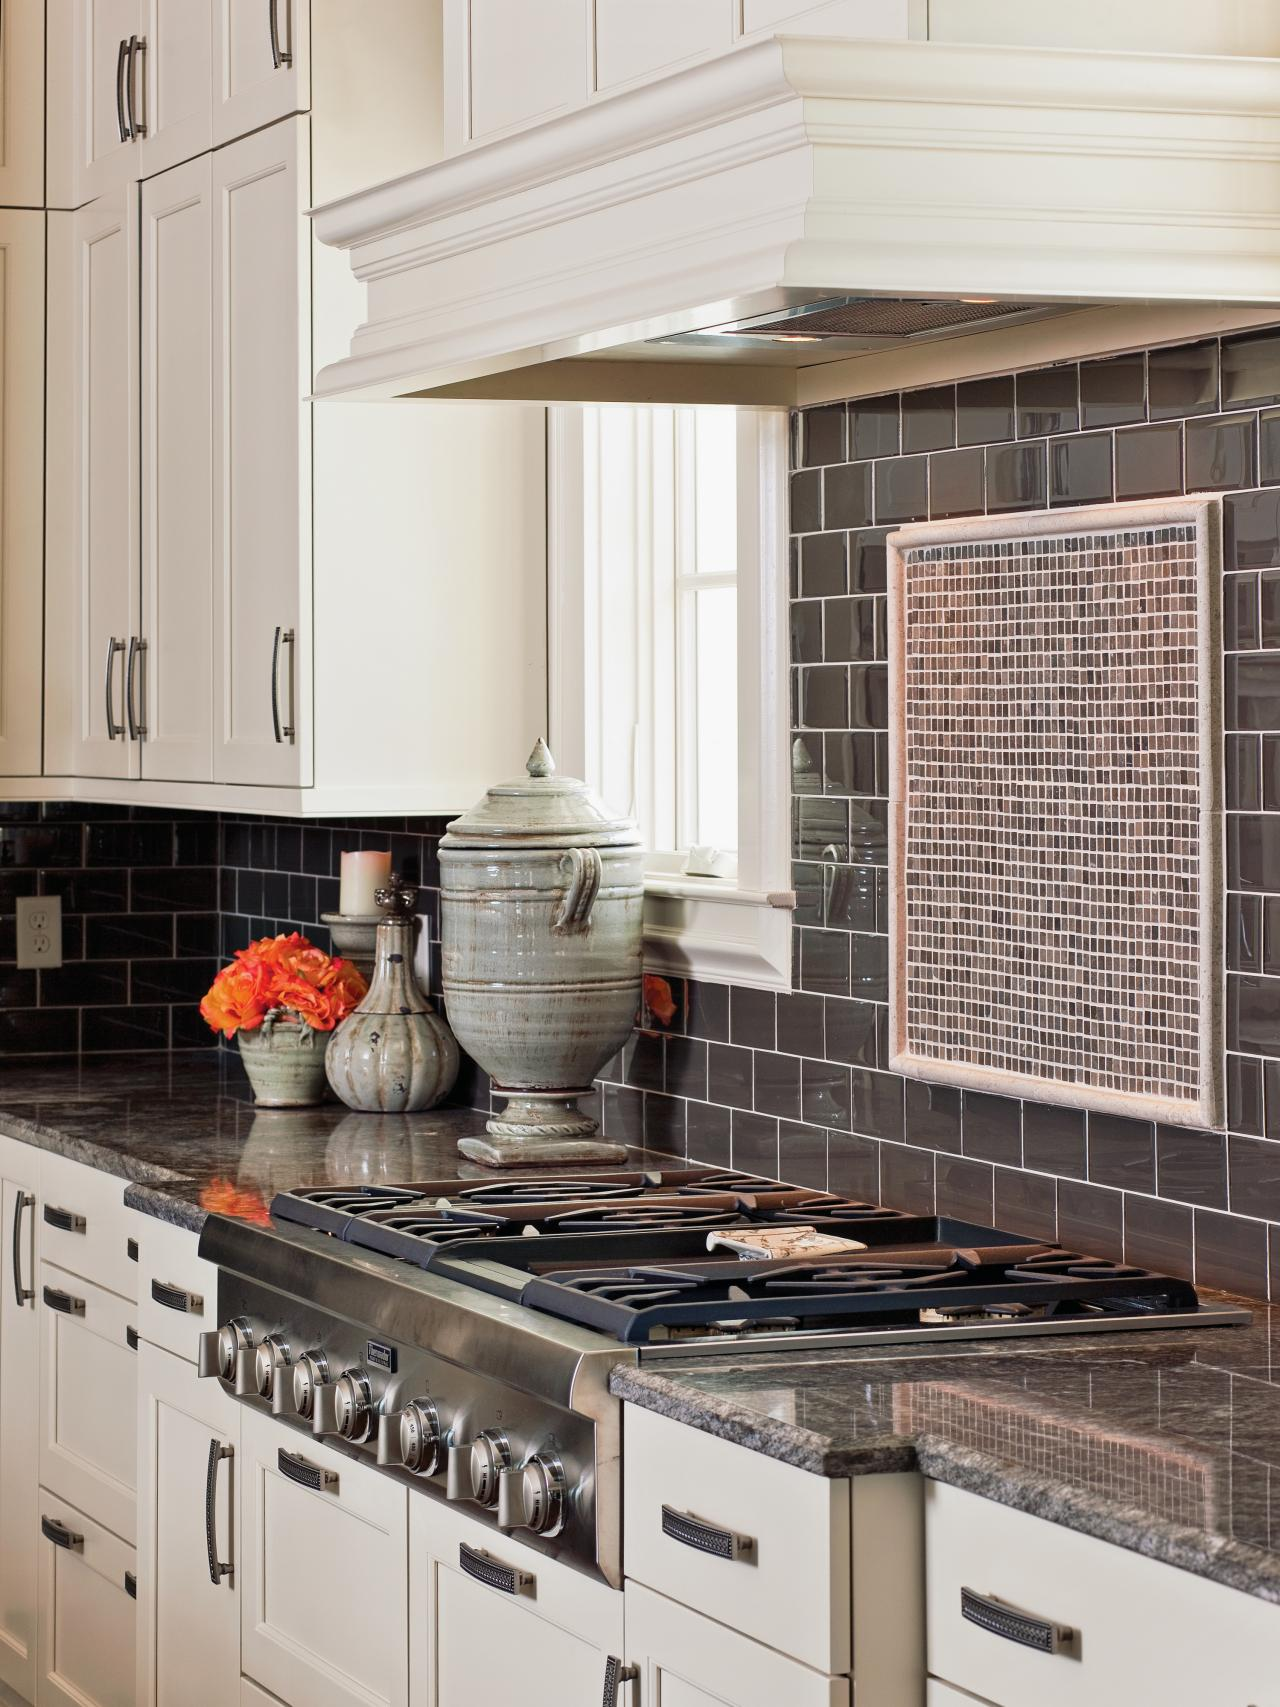 Subway tile backsplashes pictures ideas tips from hgtv hgtv dailygadgetfo Images